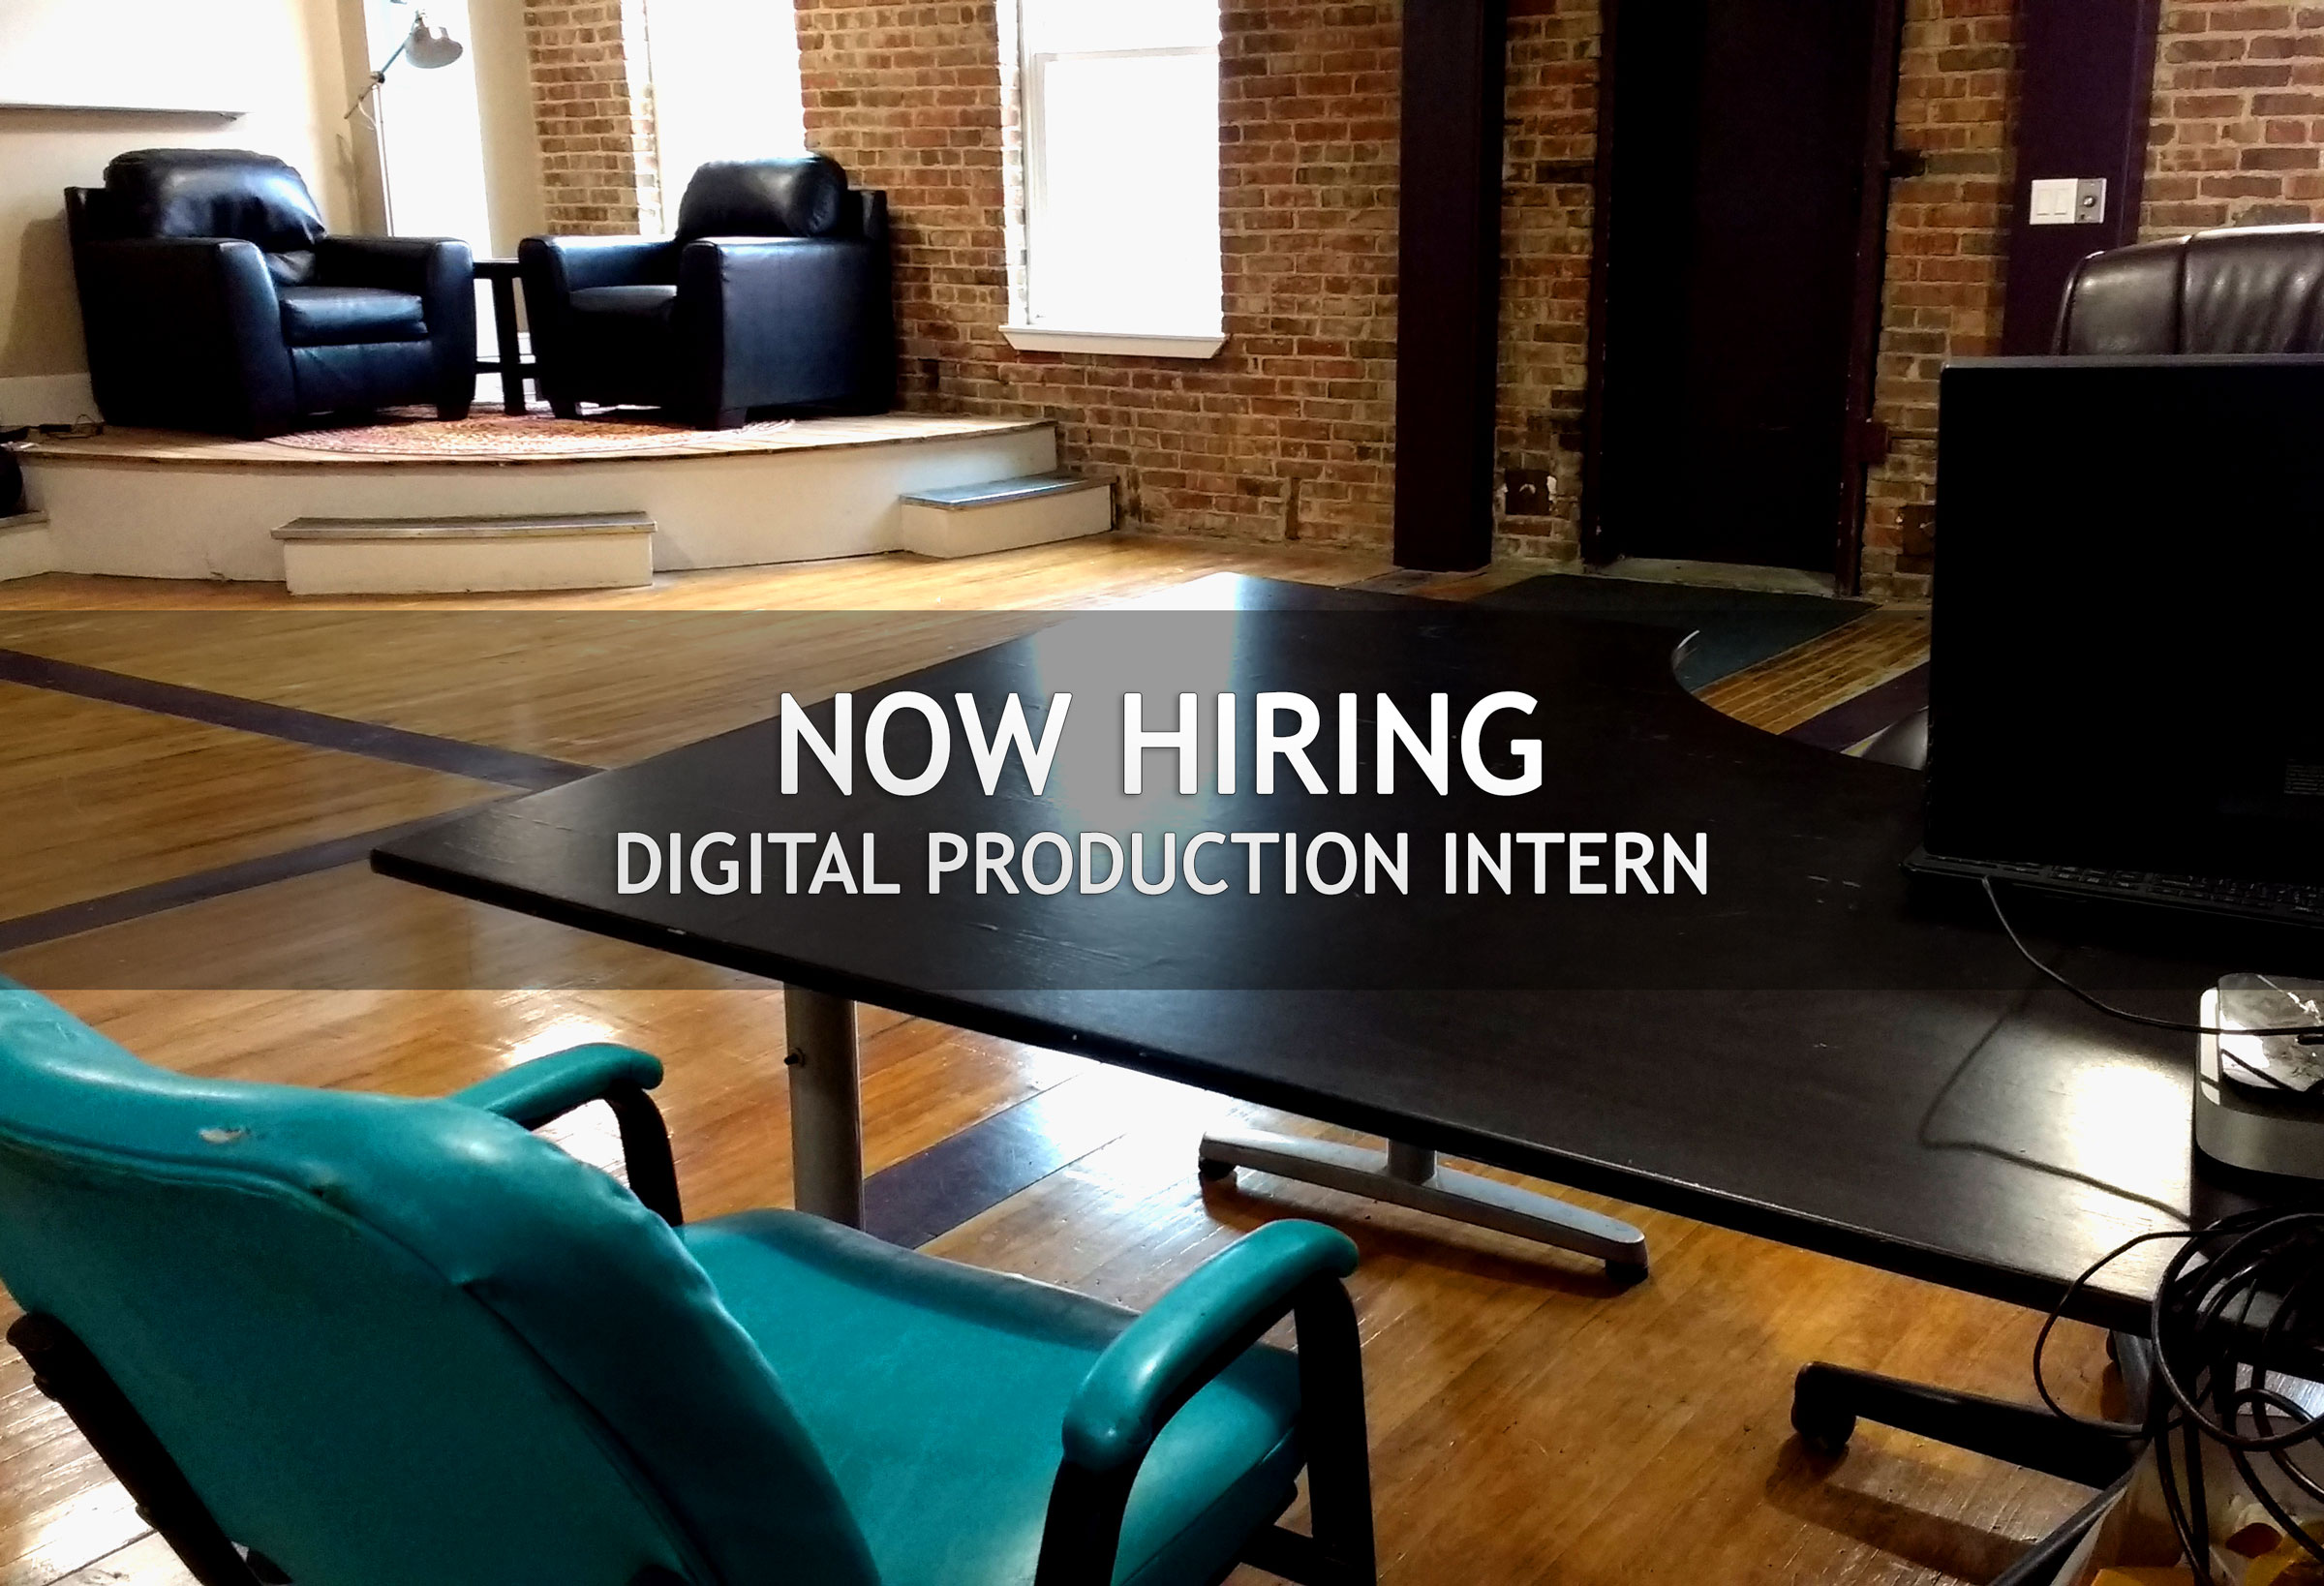 Now Hiring Digital Production Intern